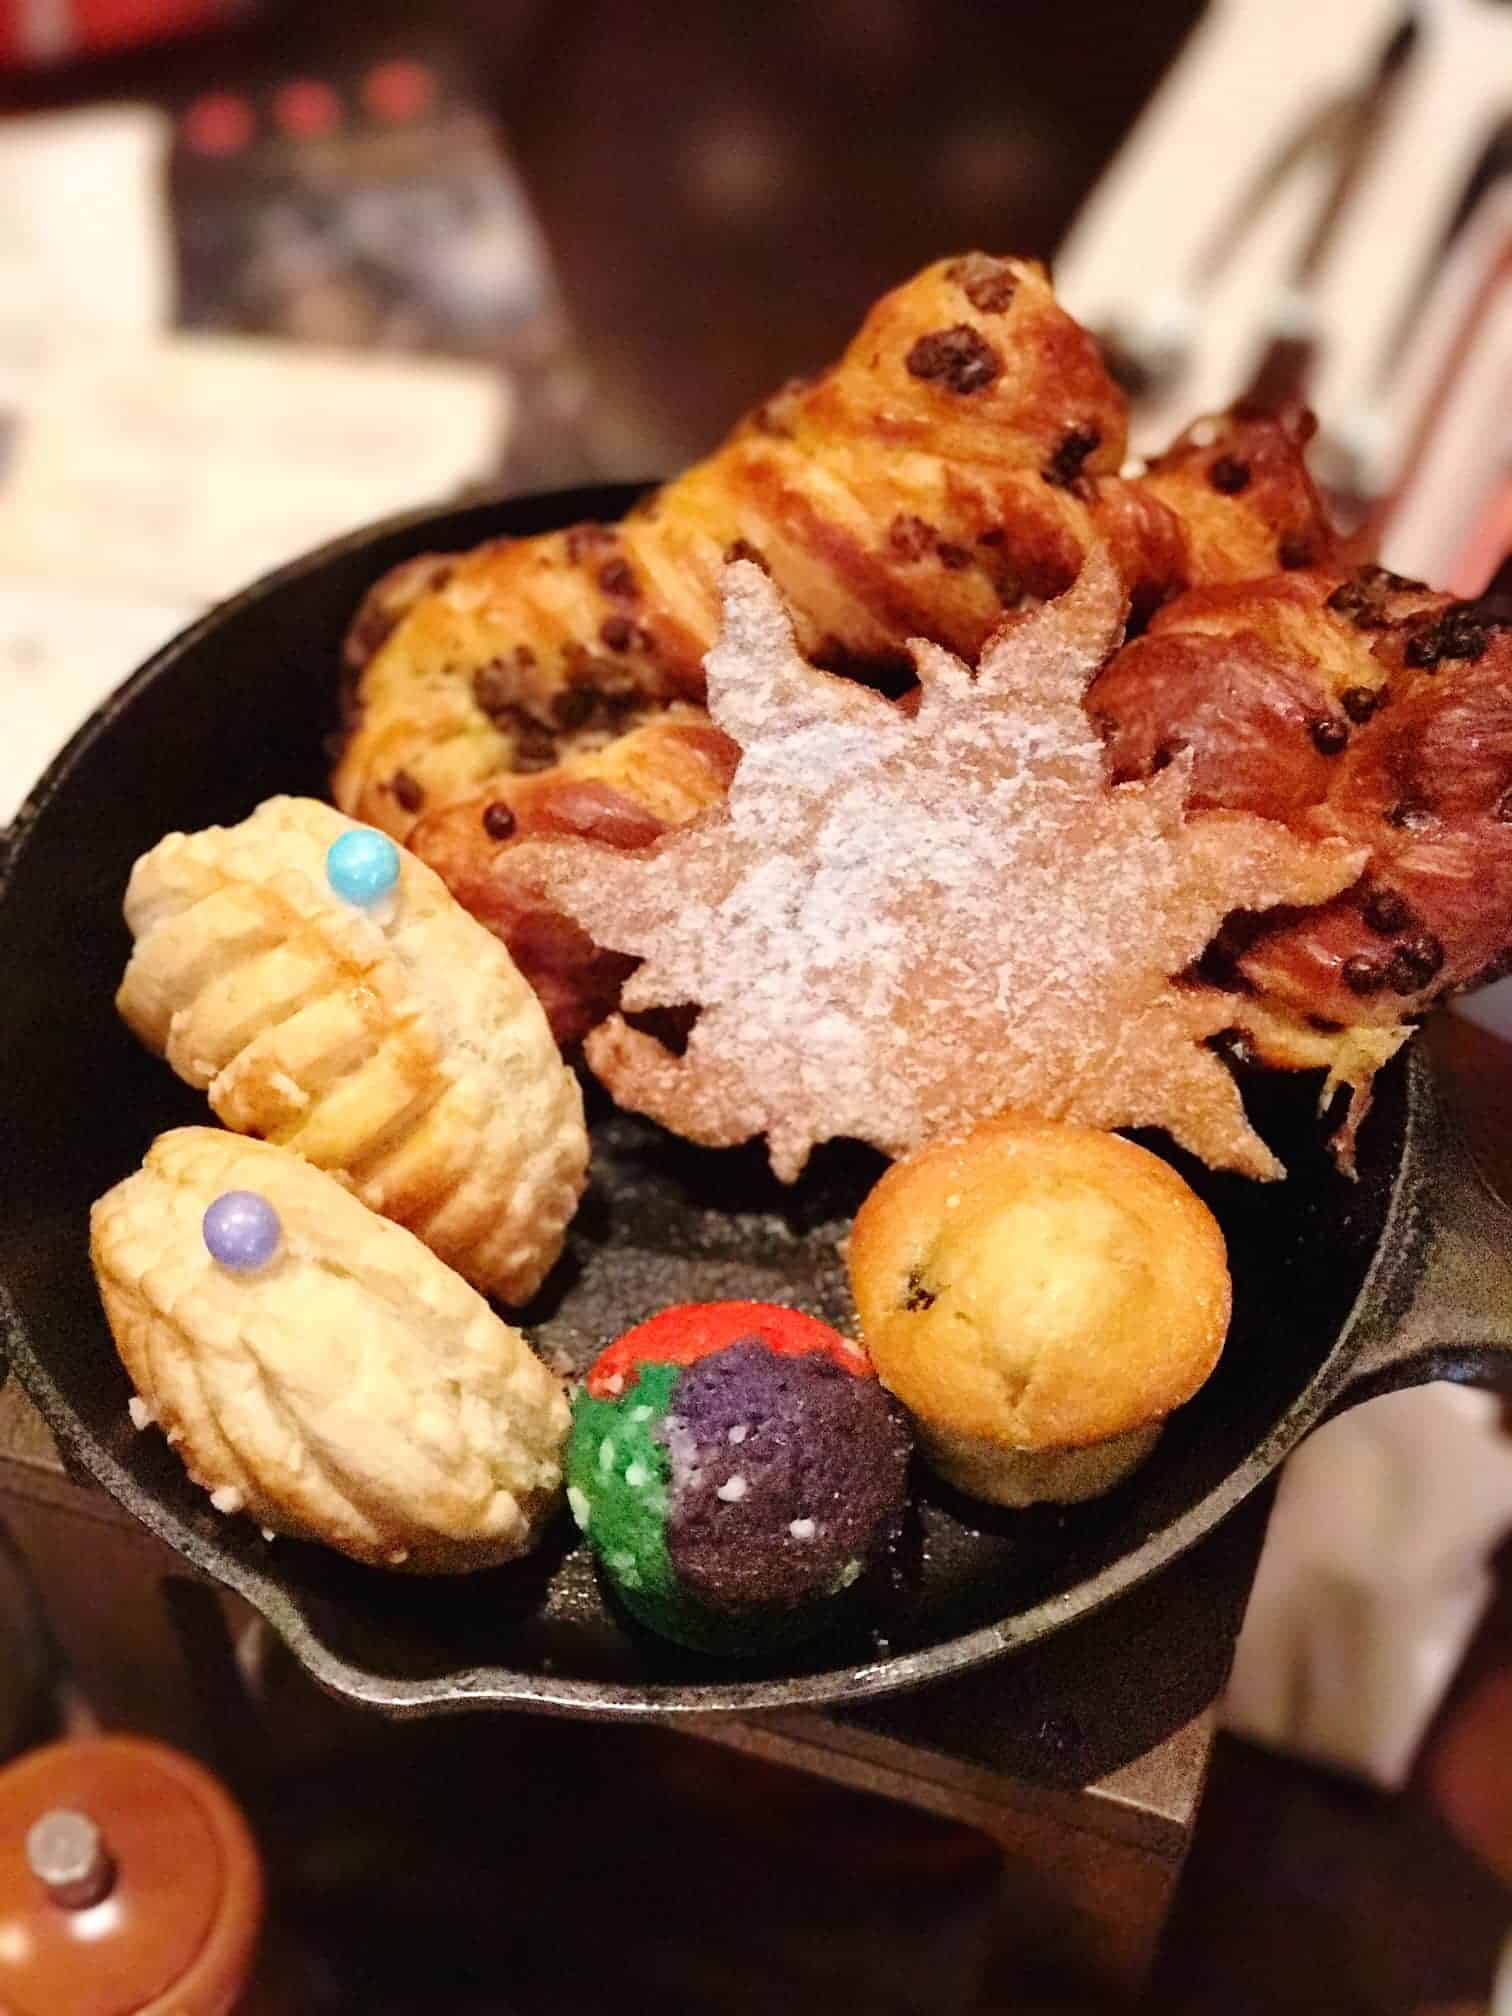 This adorable frying pan of pastries is delicious at the Bon Voyage Character Breakfast.